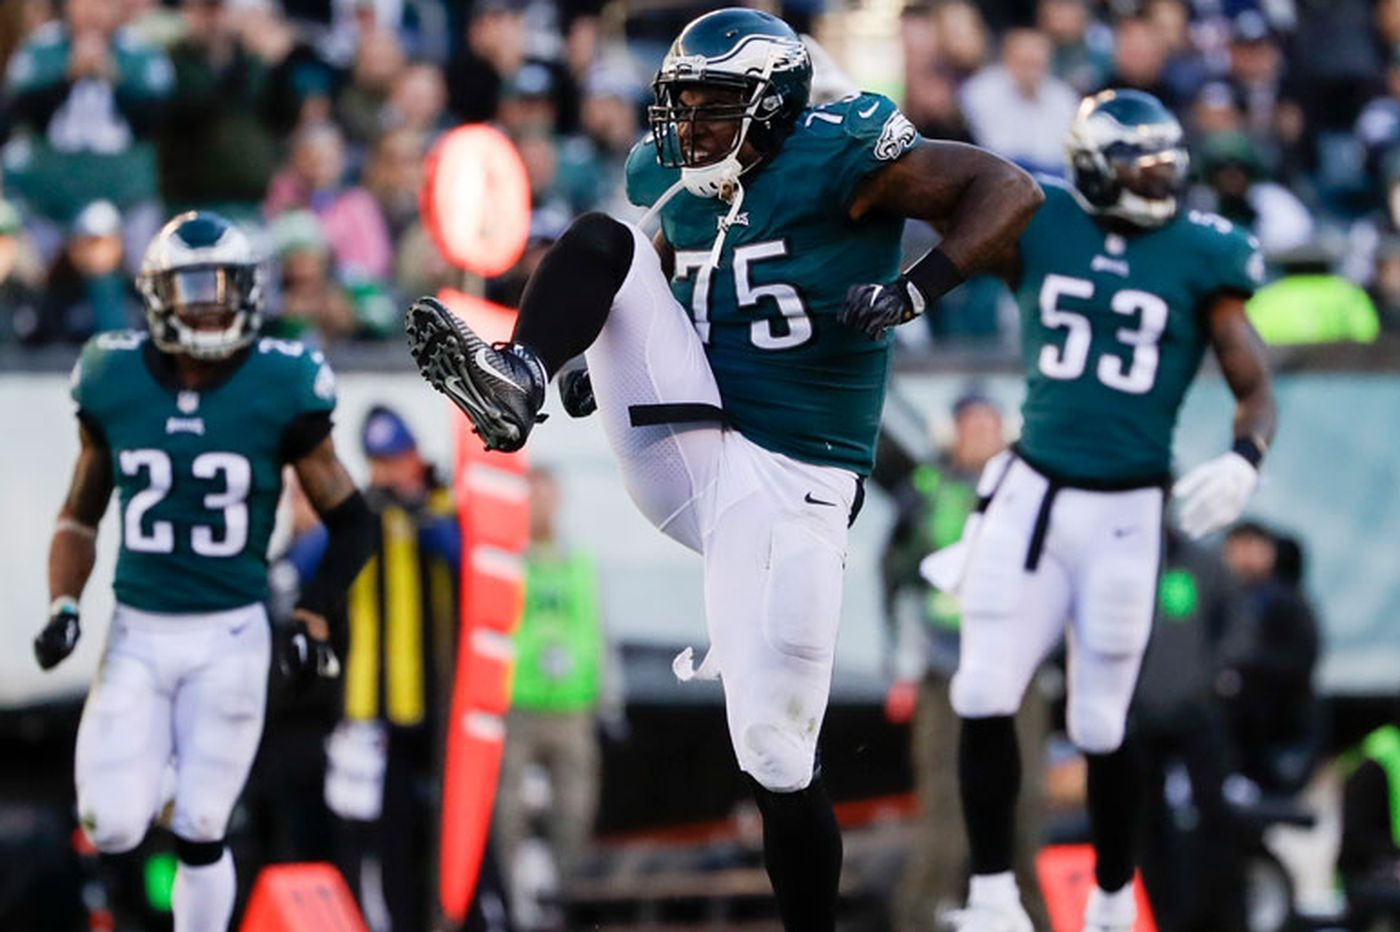 Vinny Curry happy to be back 'home' with the Eagles, even at a possible discount